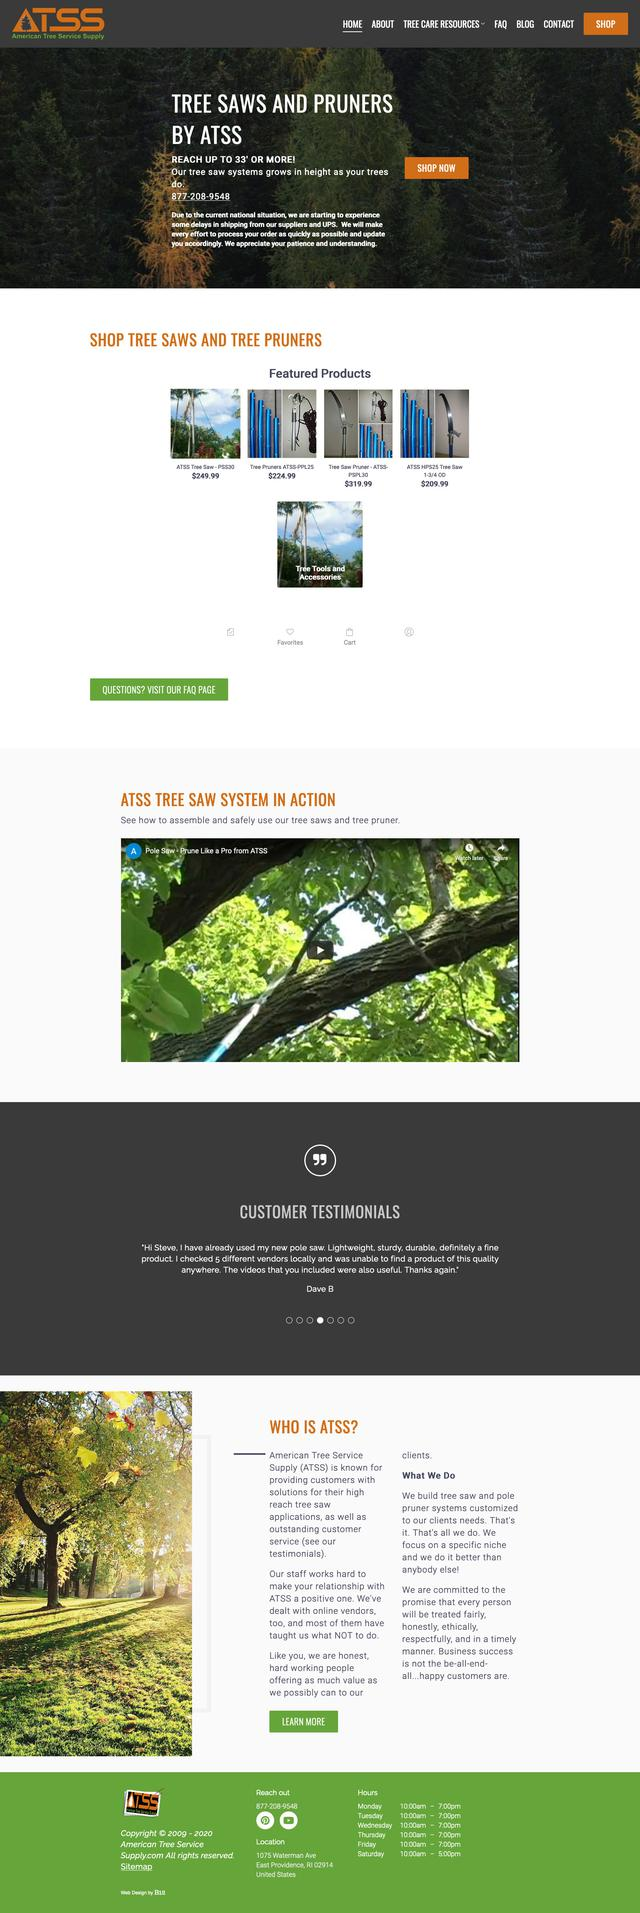 screenshot_2020-07-24 tree saws and pruners - american tree service supply.jpg